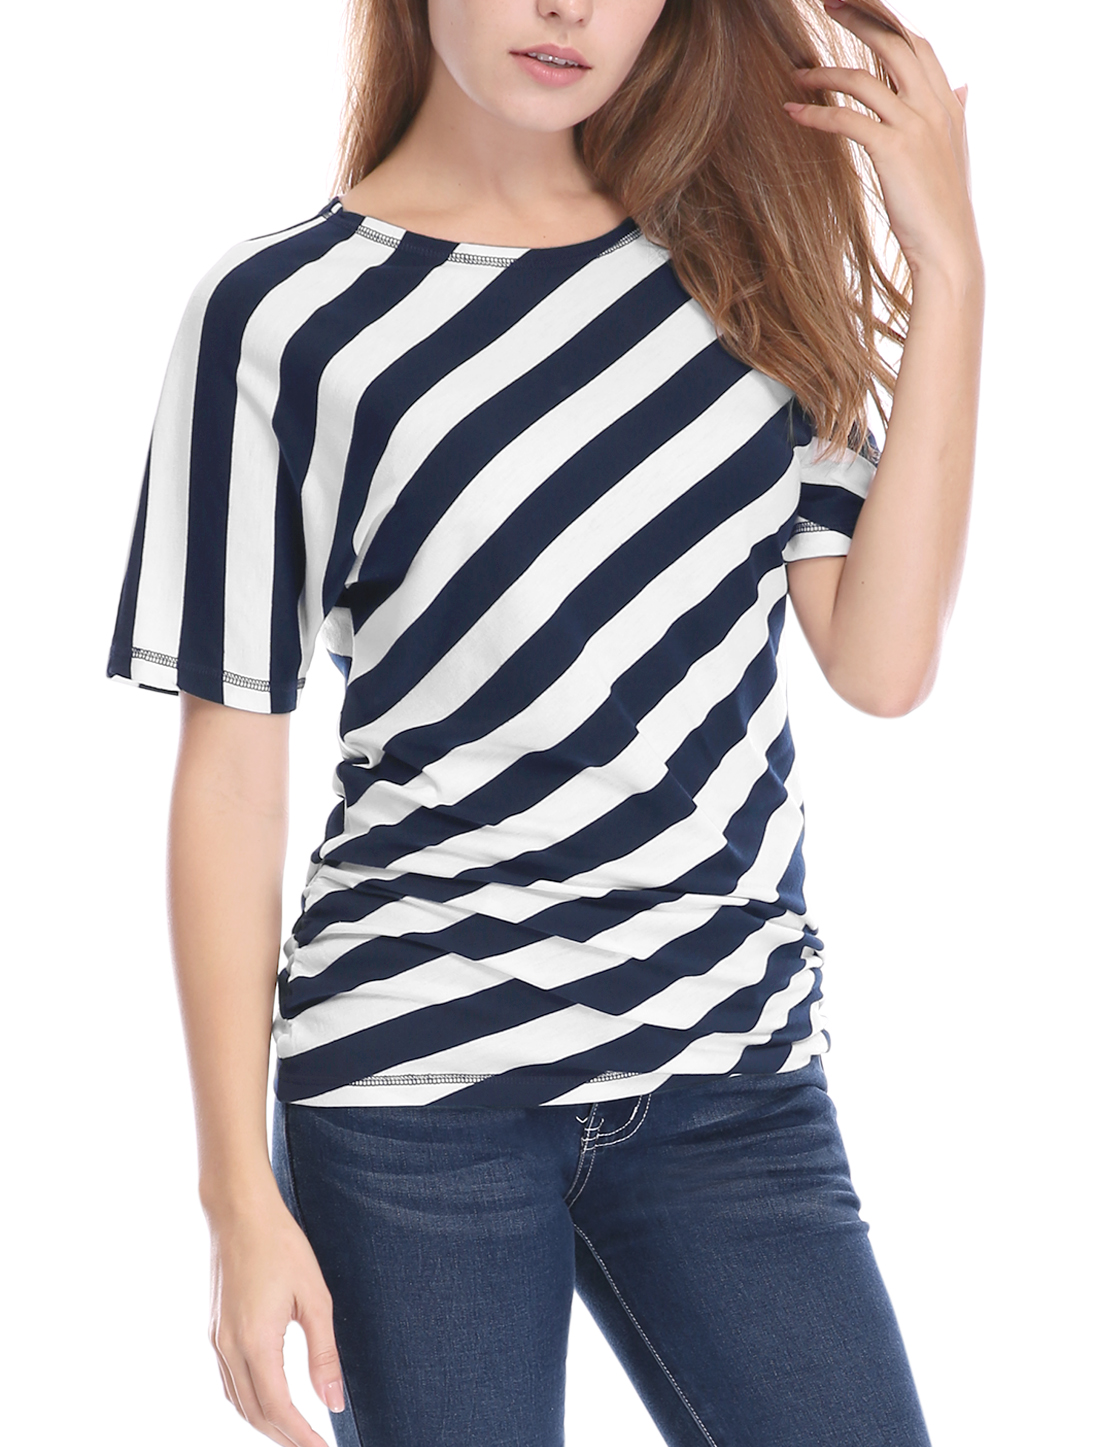 Women Striped Shirred Sides Short Batwing Sleeves Top Blue XS